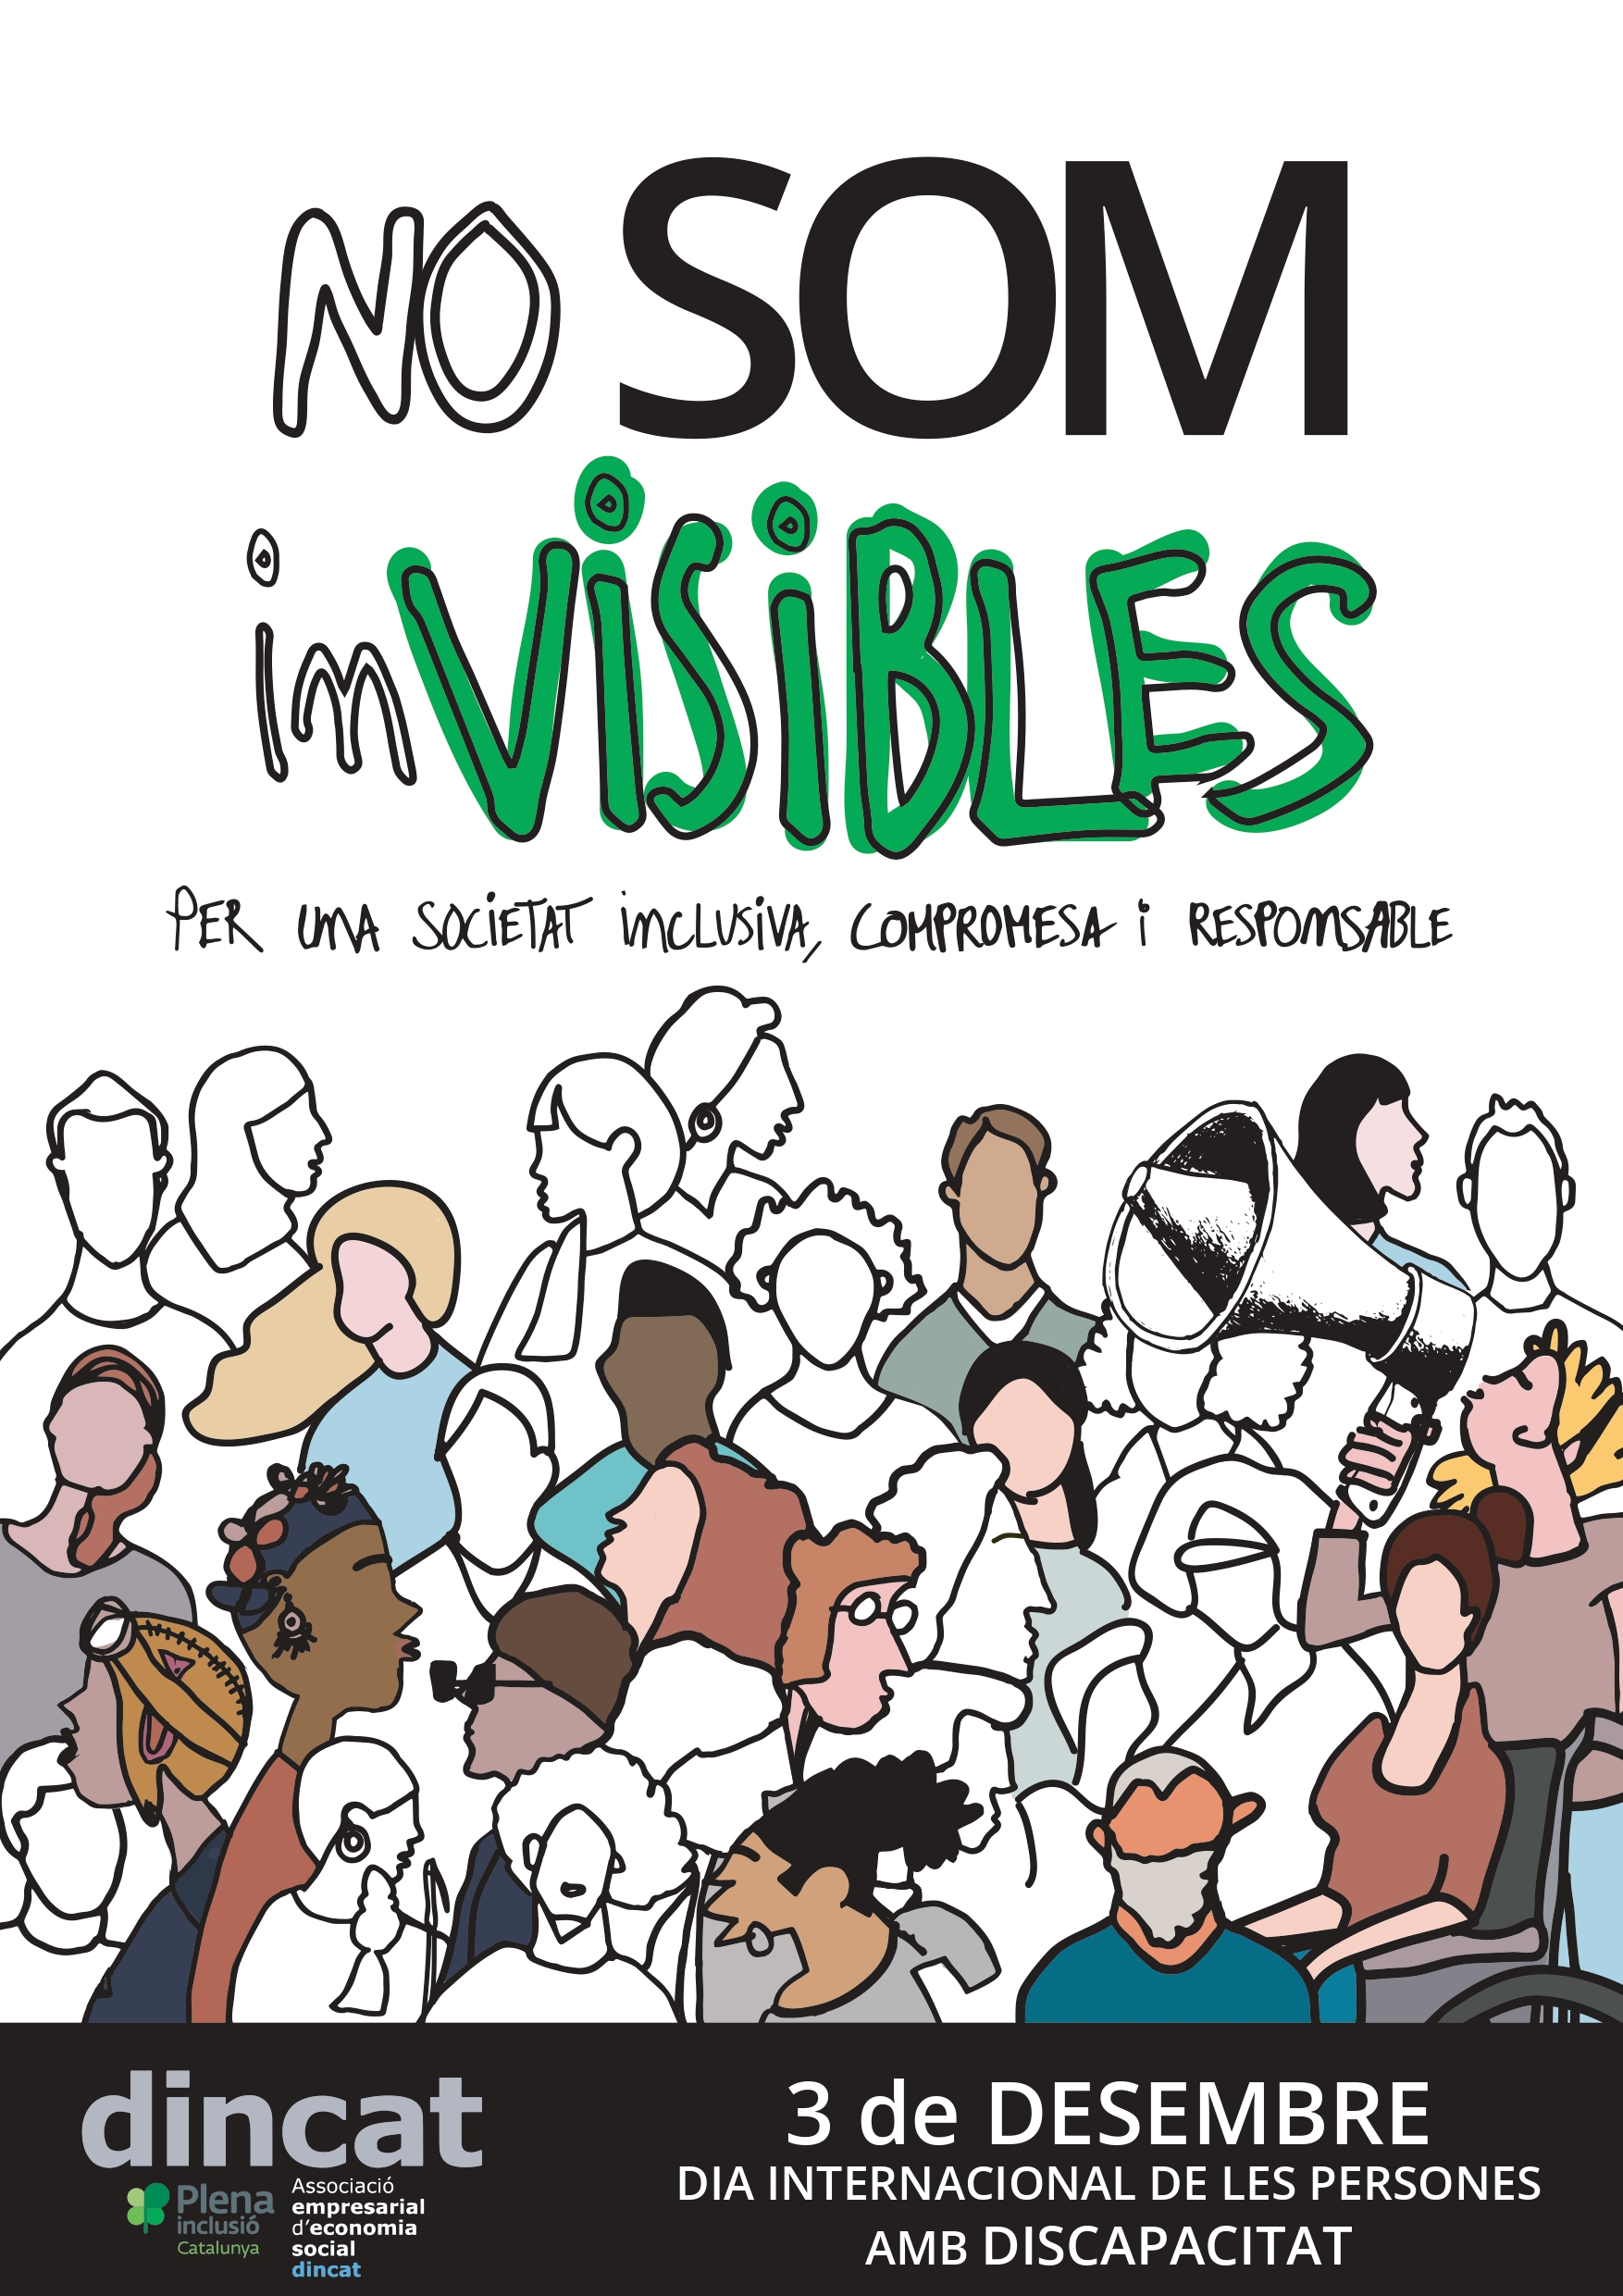 No som invisibles